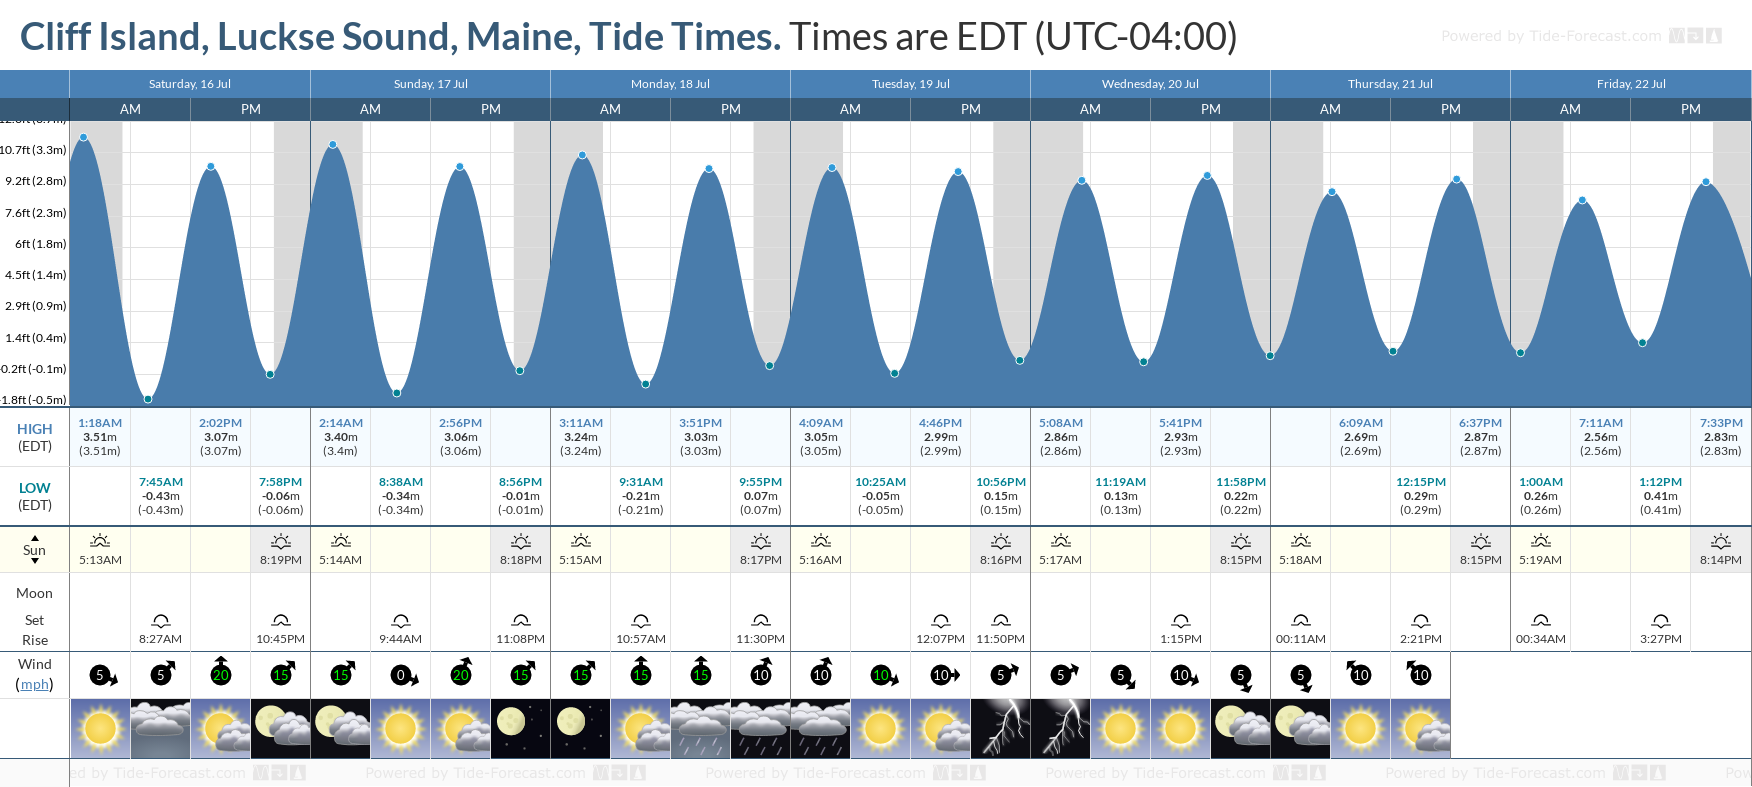 Cliff Island, Luckse Sound, Maine Tide Chart including high and low tide tide times for the next 7 days